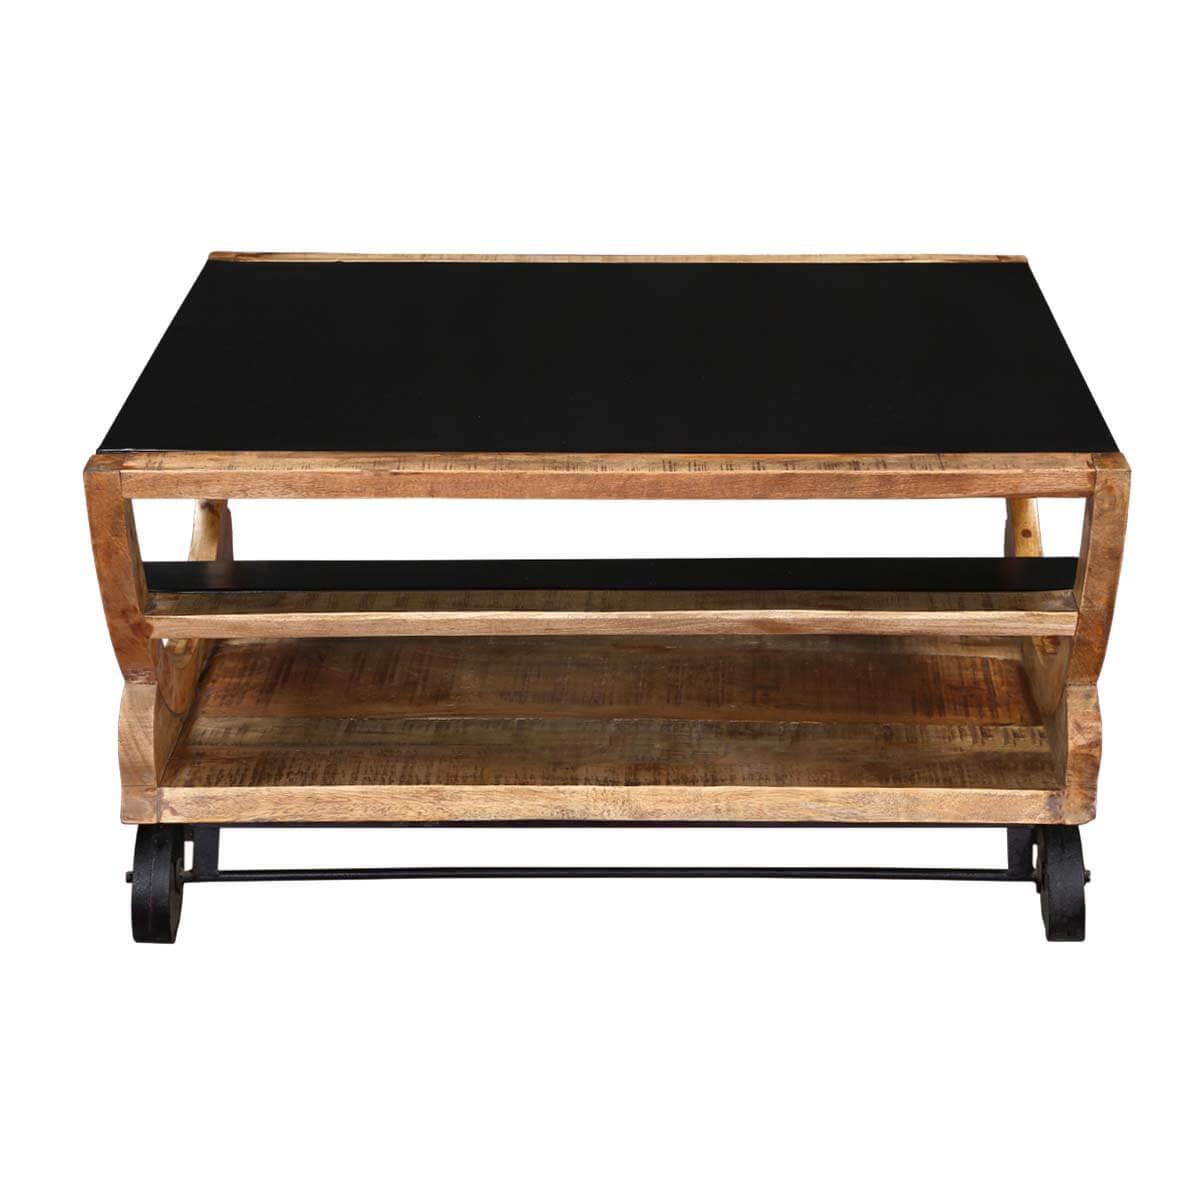 Very Impressive portraiture of  Savannah 3 shelf with 6 wheels Iron & Wood Modern Accent Coffee Table with #B48317 color and 1200x1200 pixels